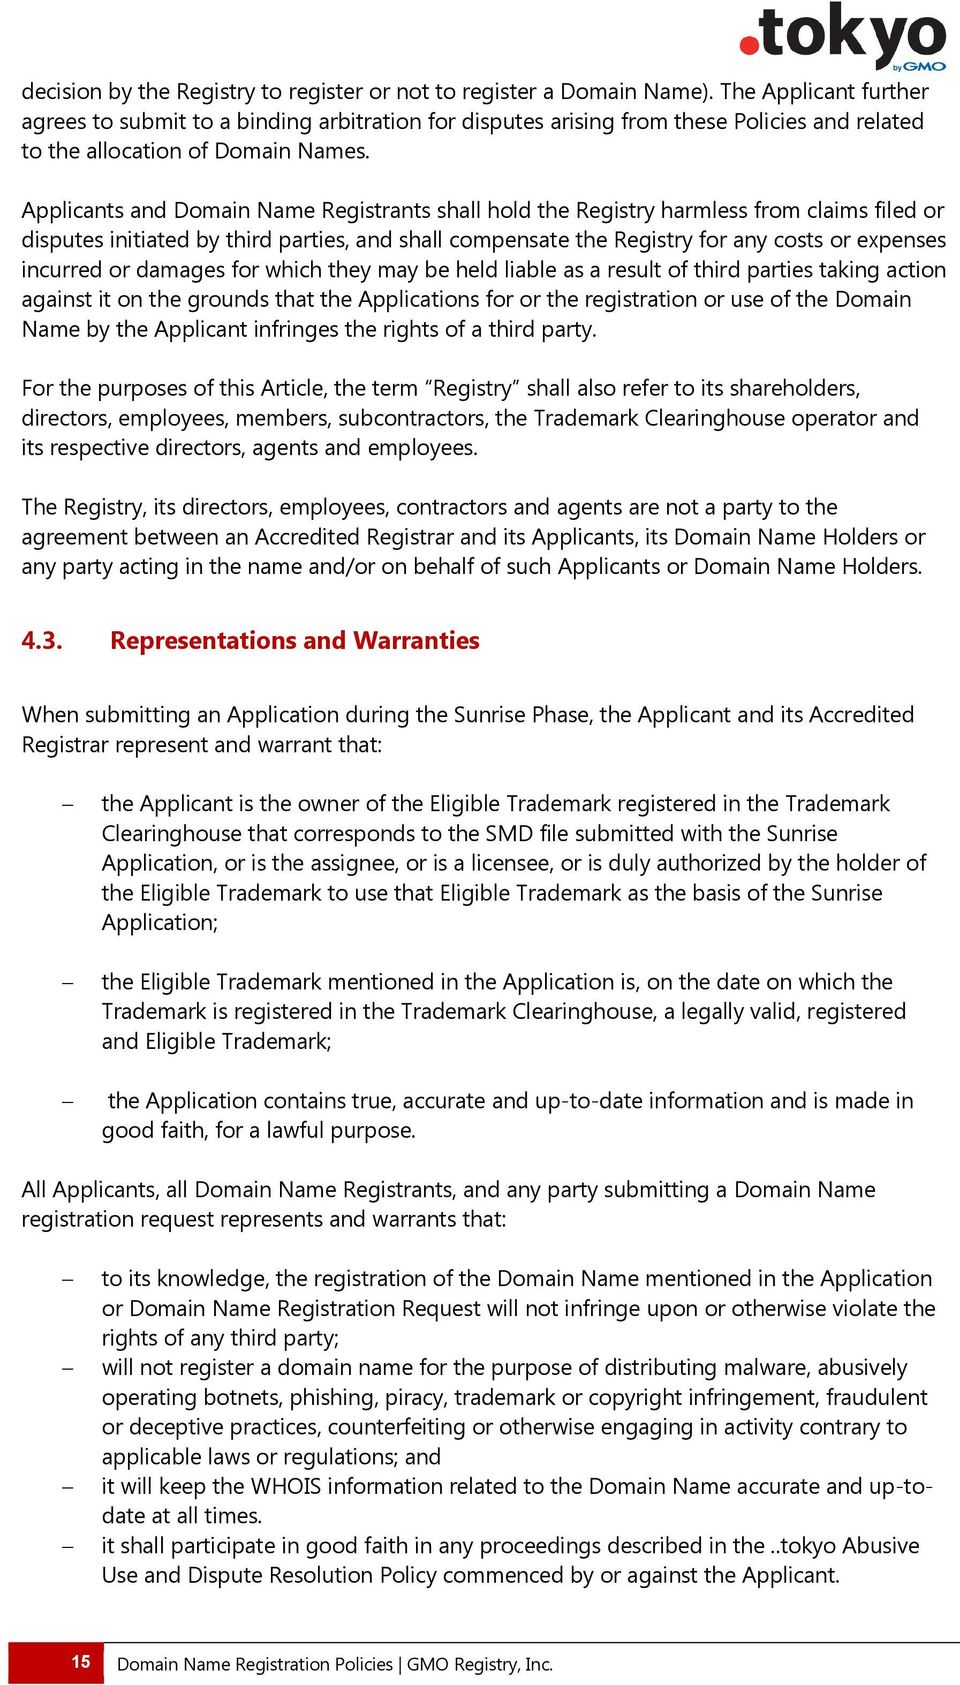 Applicants and Domain Name Registrants shall hold the Registry harmless from claims filed or disputes initiated by third parties, and shall compensate the Registry for any costs or expenses incurred